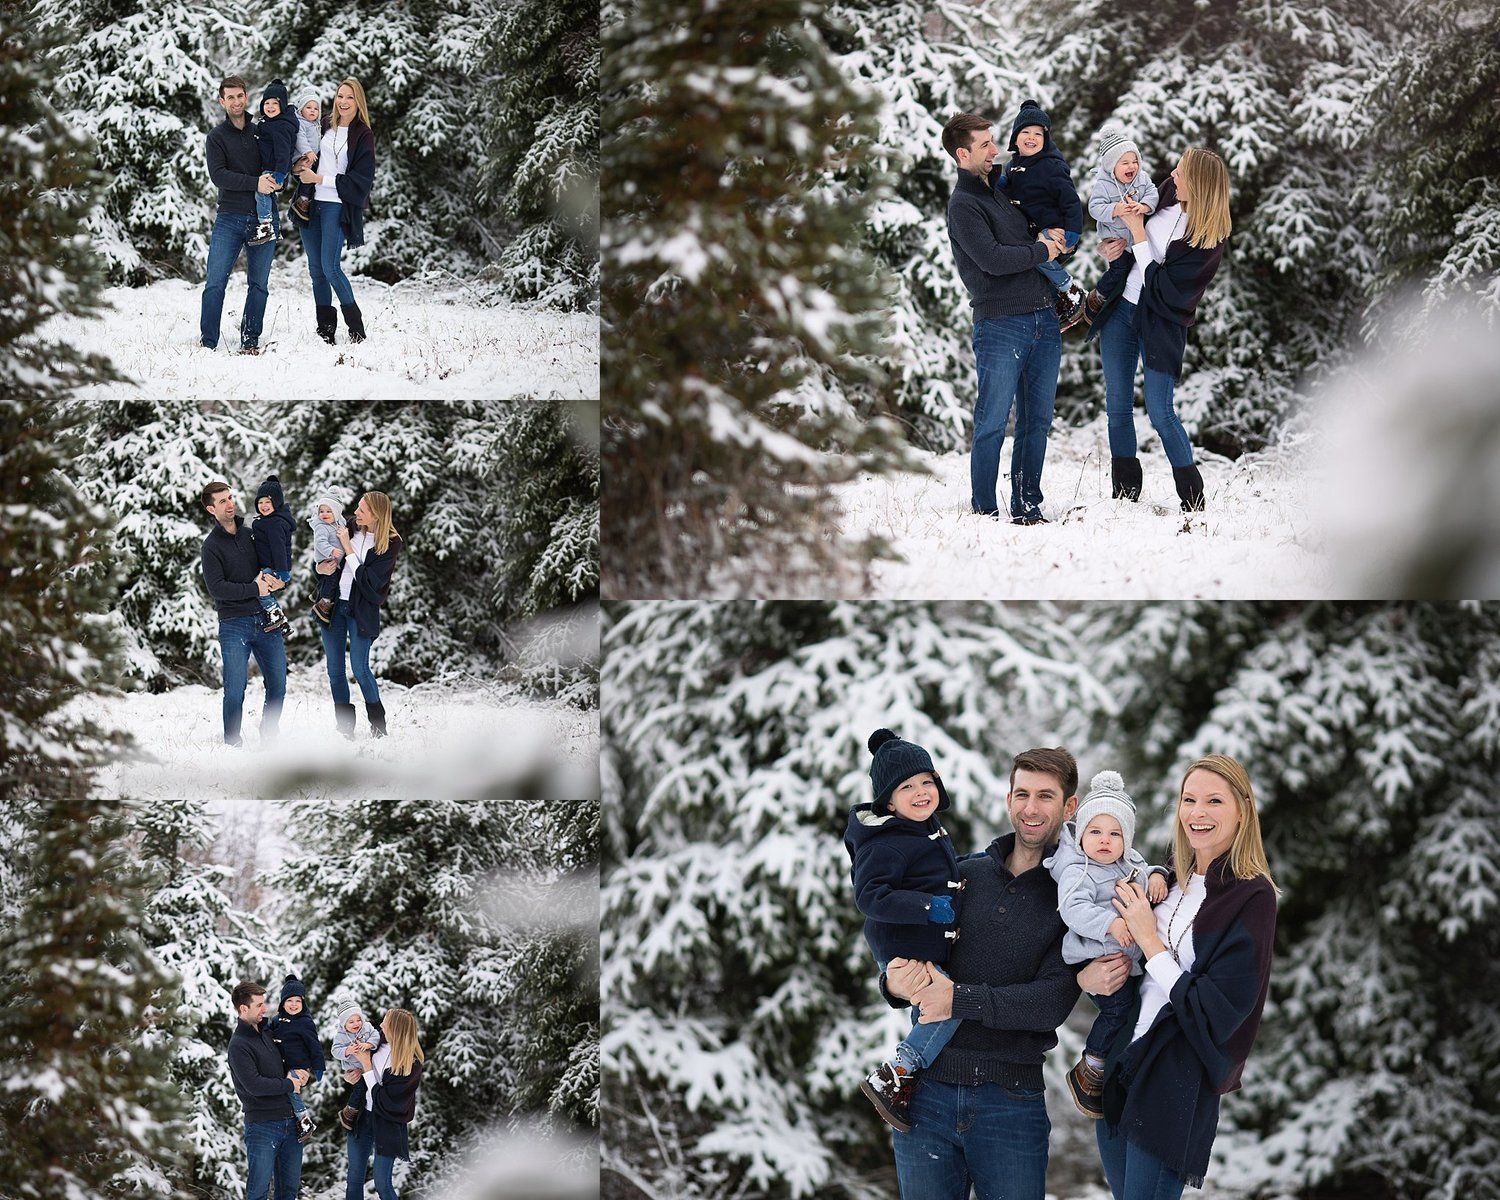 Holiday Traditions Limited Edition Portrait Session Ottawa South Michelle Ma Belle Photography Ottawa Family Photographer Christmas Tree Farm Photos Winter Pictures Family Photos